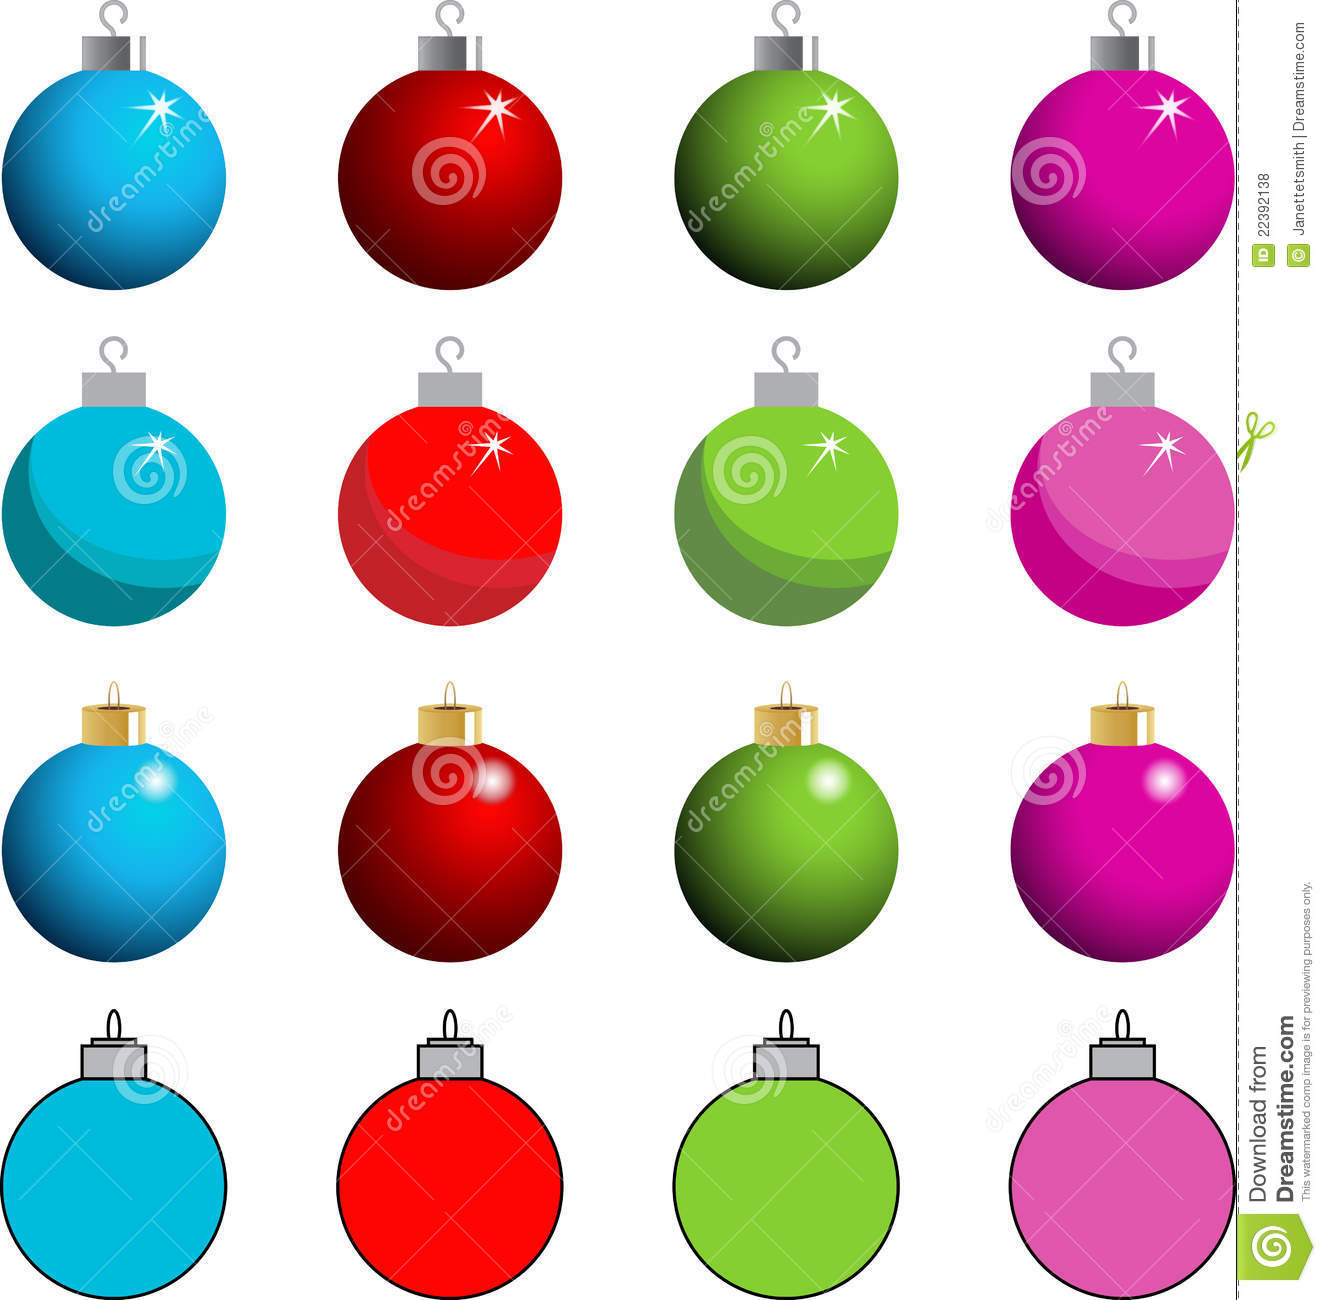 Tree Ornament Clipart Royalty Free Stock Photos - Image ...